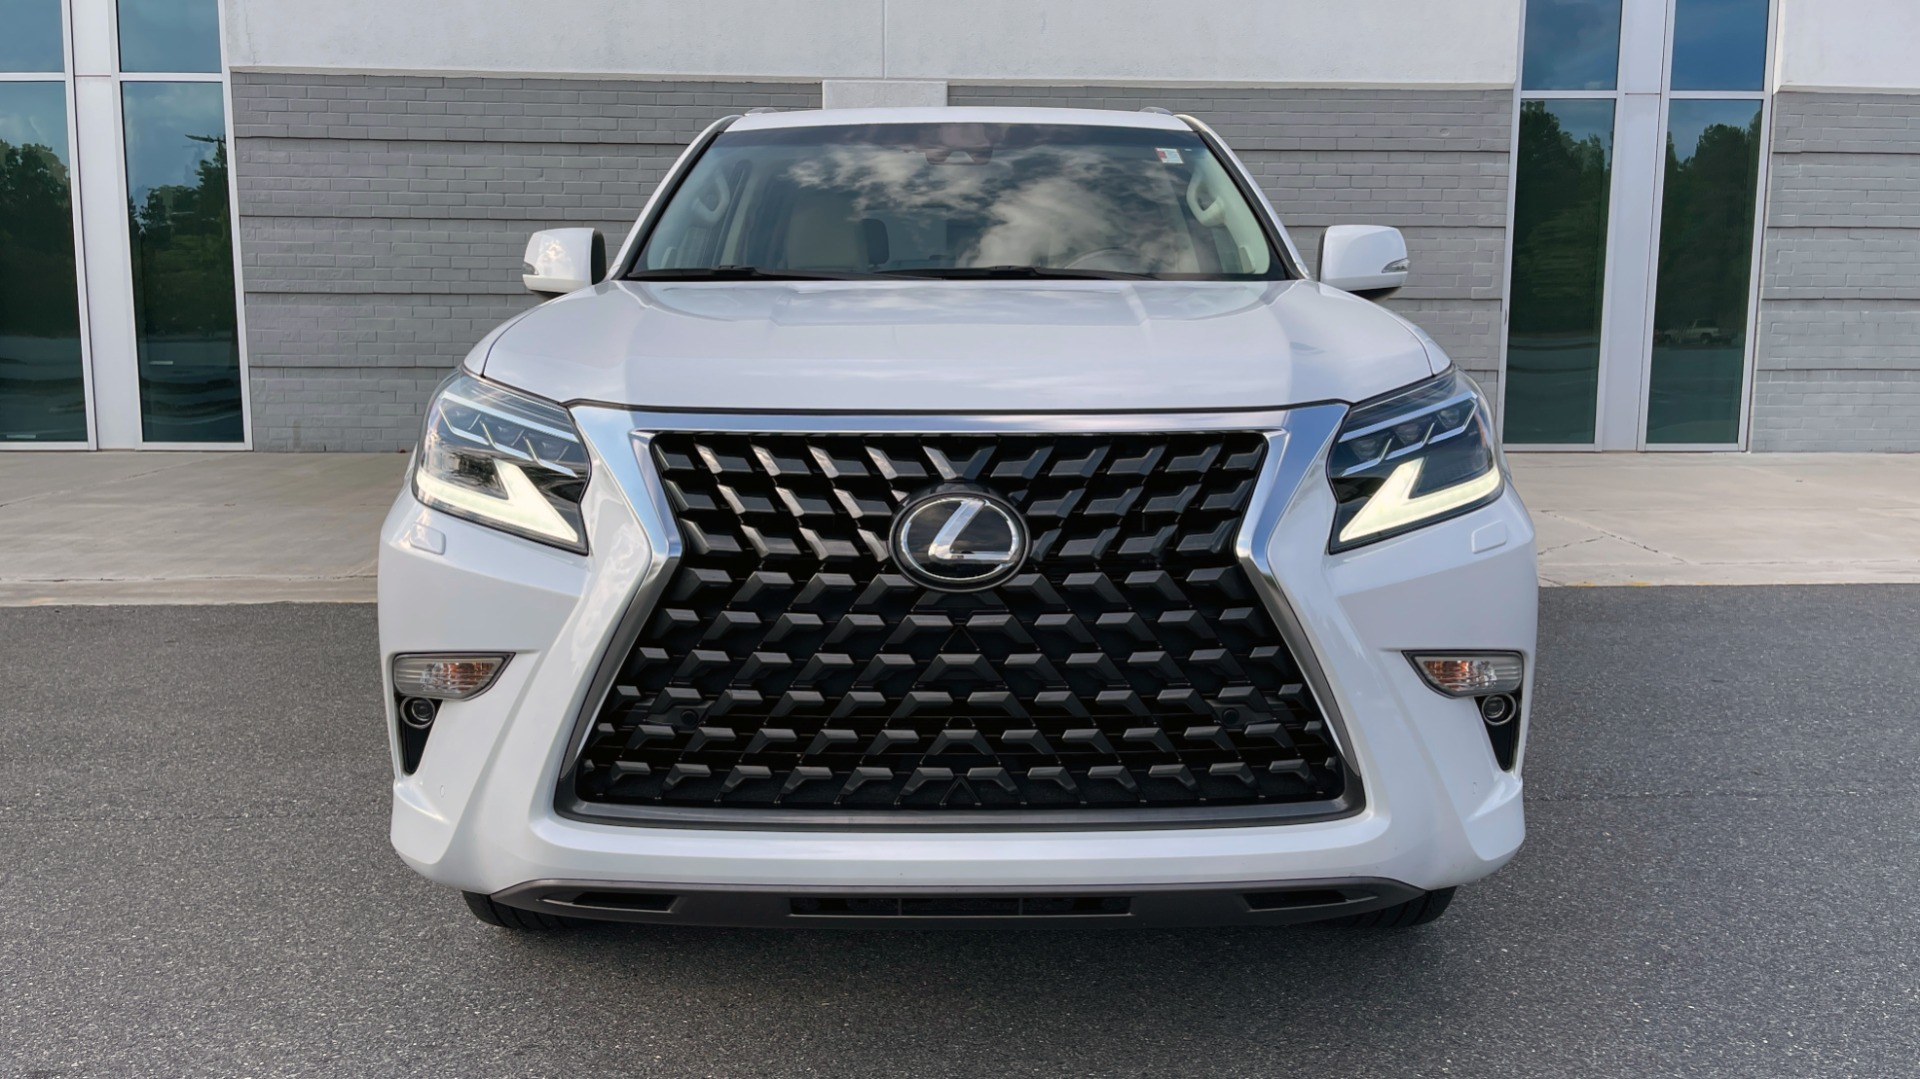 Used 2020 Lexus GX 460 PREMIUM / AWD / NAV / SUNROOF / 3-ROW / REARVIEW for sale $54,495 at Formula Imports in Charlotte NC 28227 9